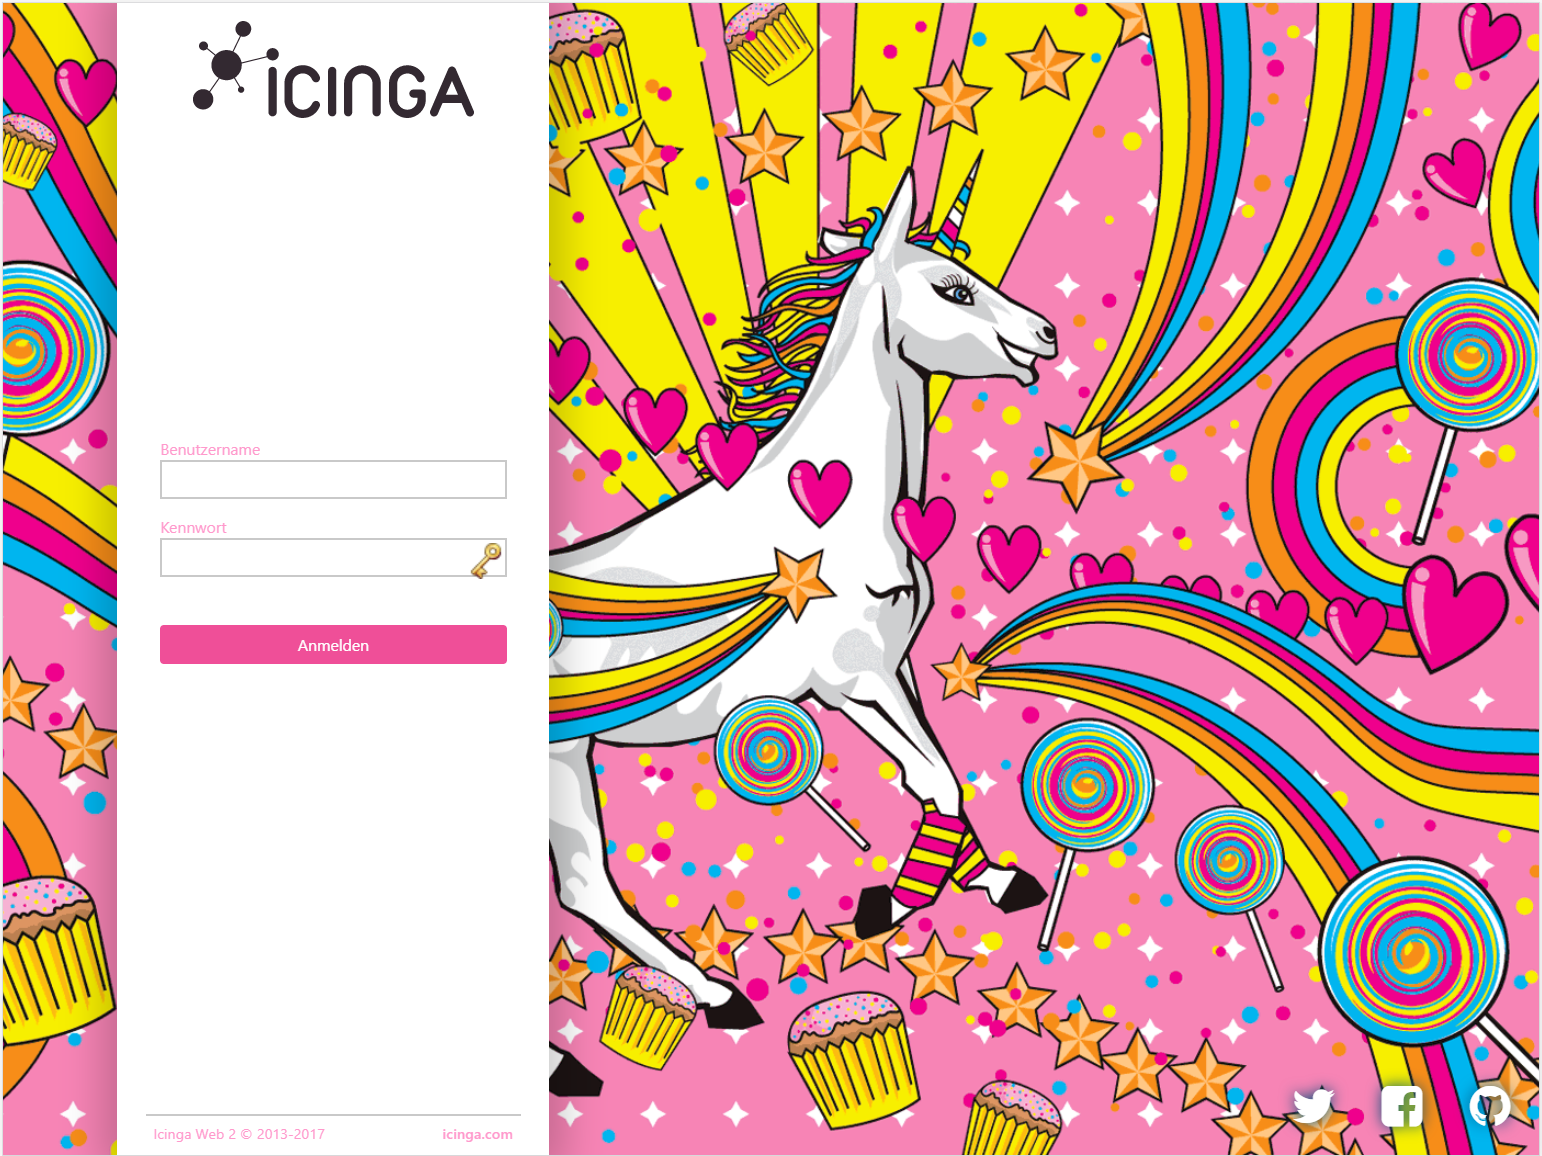 Icinga Web 2 theme Unicorn